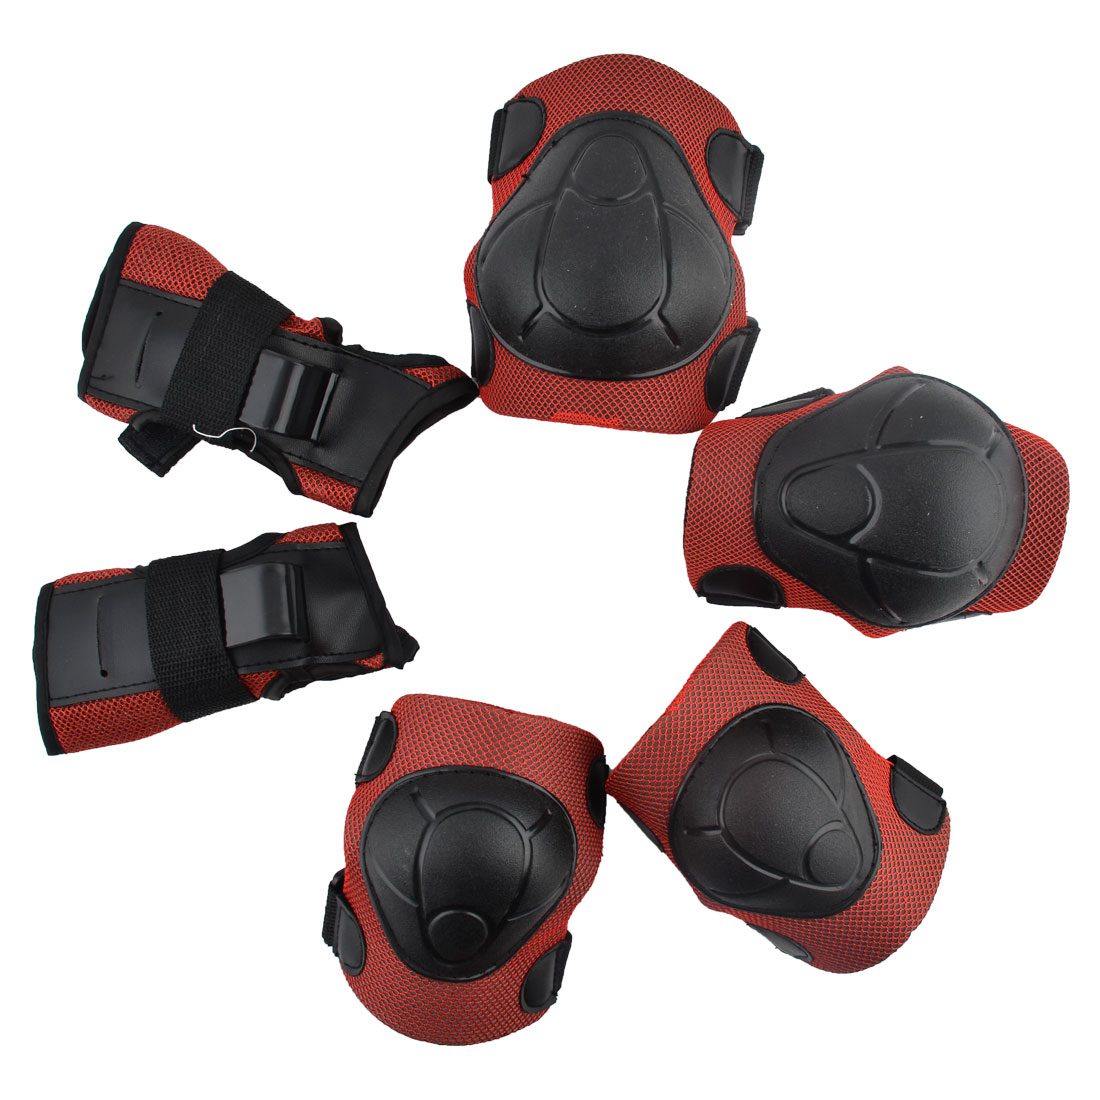 Sport Skating Palm Elbow Knee Support Guard Pad Protector Set Black Red 6 in 1